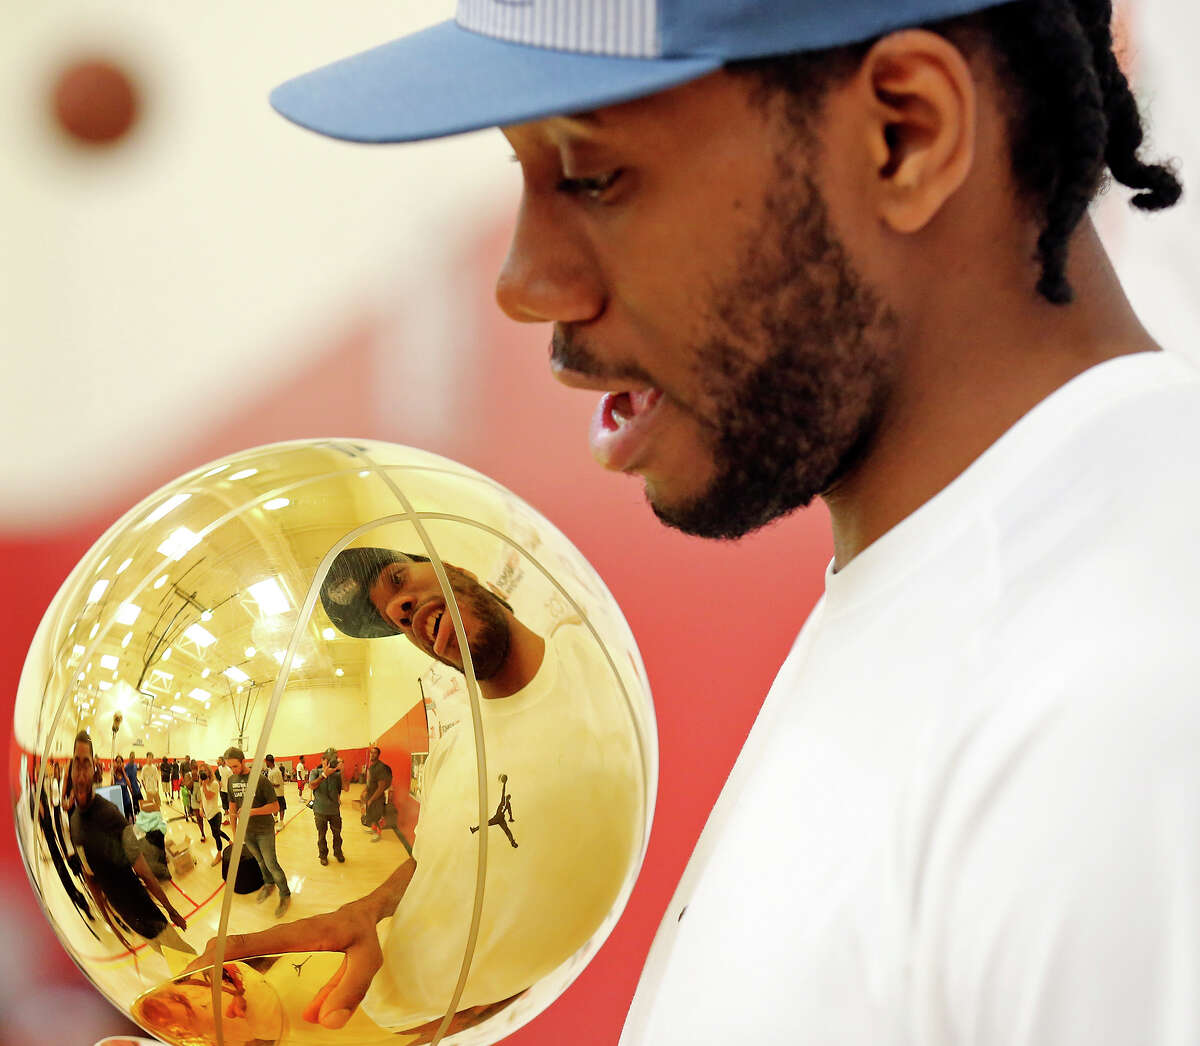 San Antonio Spurs' Kawhi Leonard is reflected in the Larry O'Brien NBA Championship Trophy during the third annual Kawhi Leonard Basketball Skills Clinic held Saturday Aug. 9, 2014 at the Moreno Valley Conference & Recreation Center in Moreno Valley, CA.